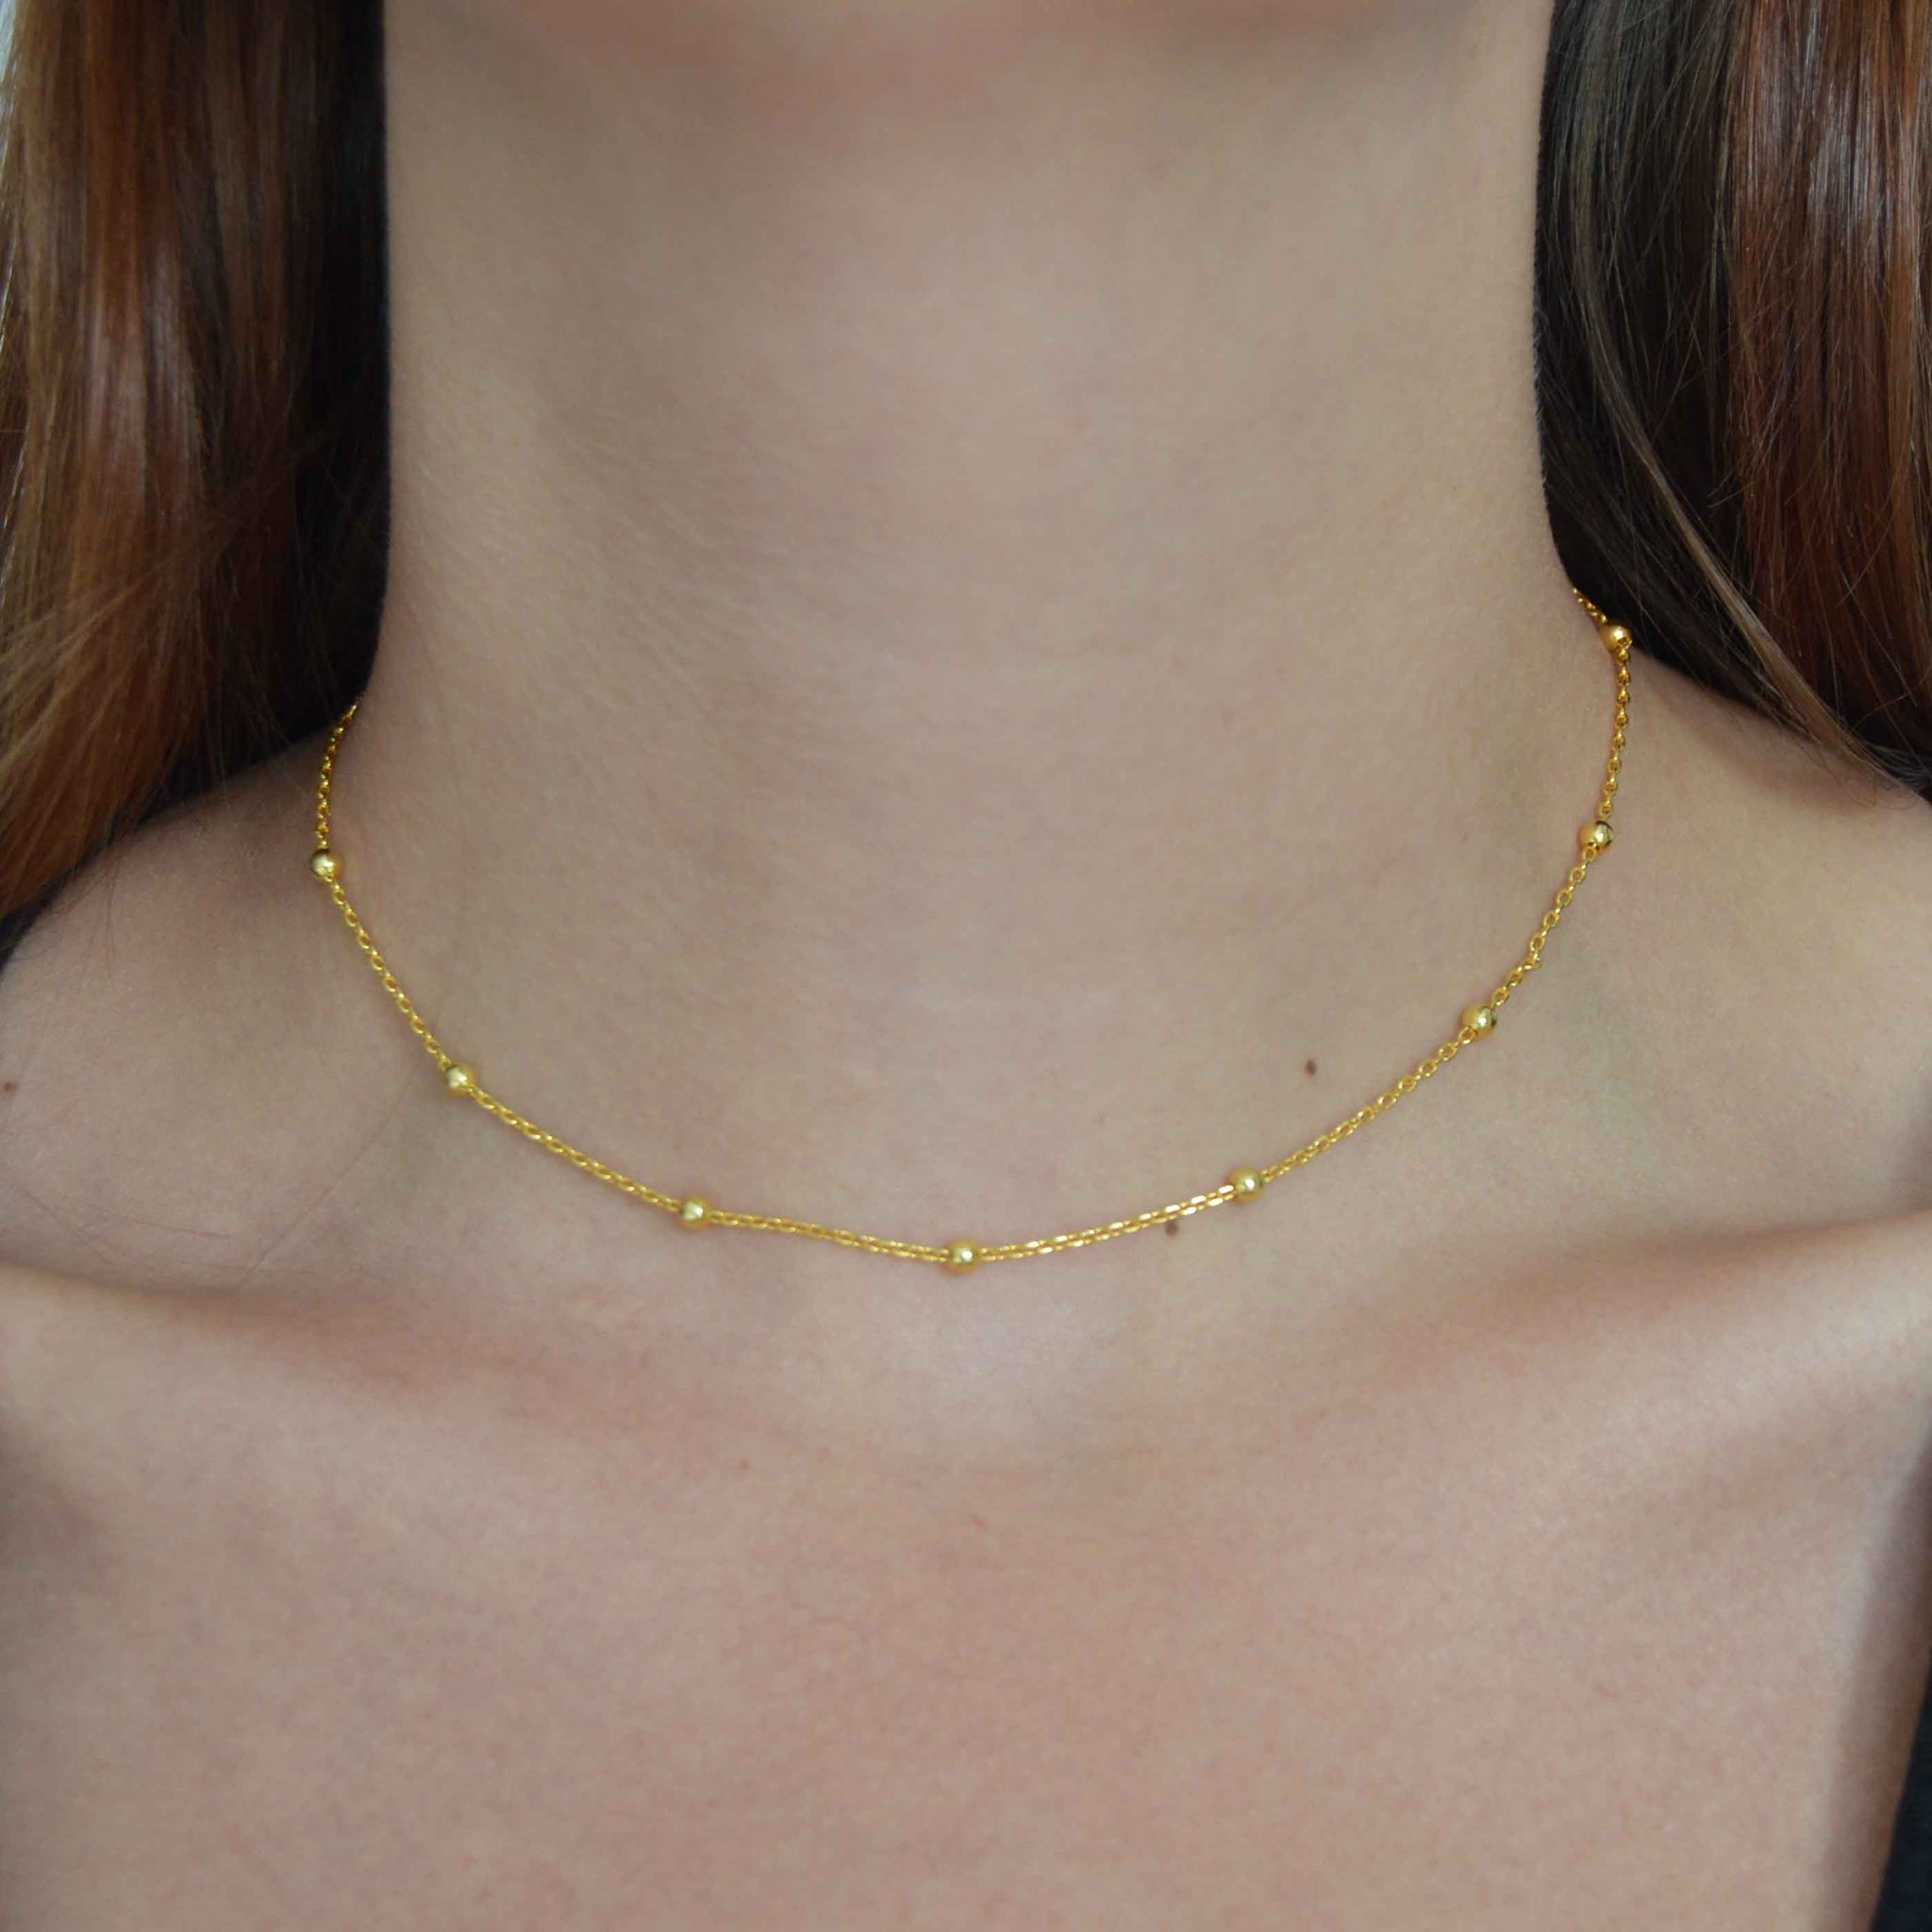 Basic Large Beaded Choker in Gold worn shot